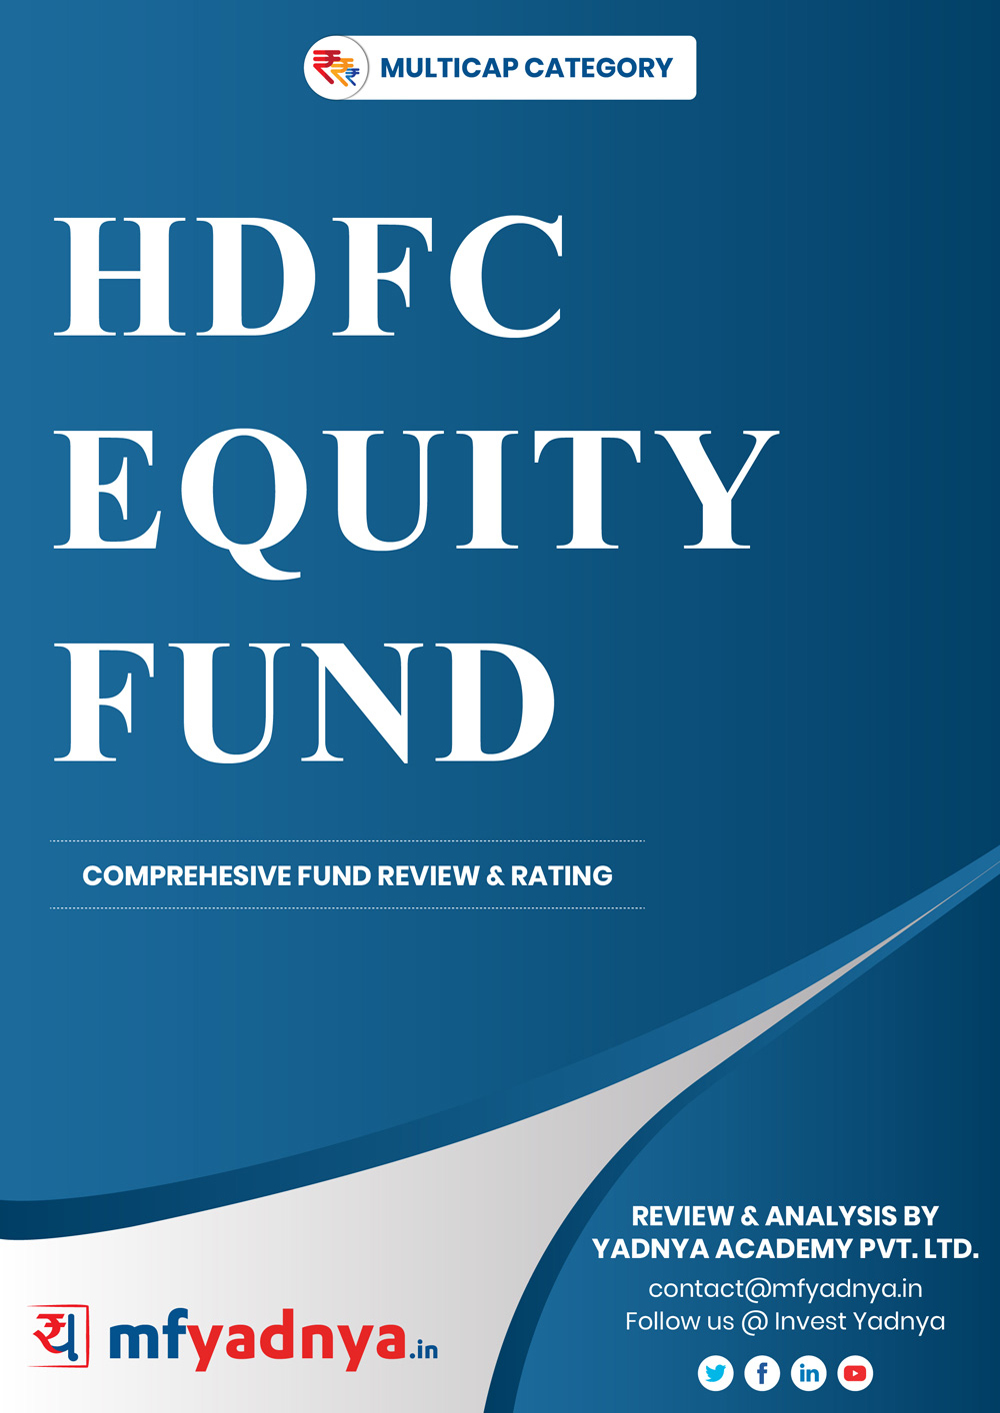 Multi-Cap Category Review - HDFC Equity Fund. Most Comprehensive and detailed MF review based on Yadnya's proprietary methodology of Green, Yellow & Red Star. Detailed Analysis & Review based on July 31st, 2019 data.